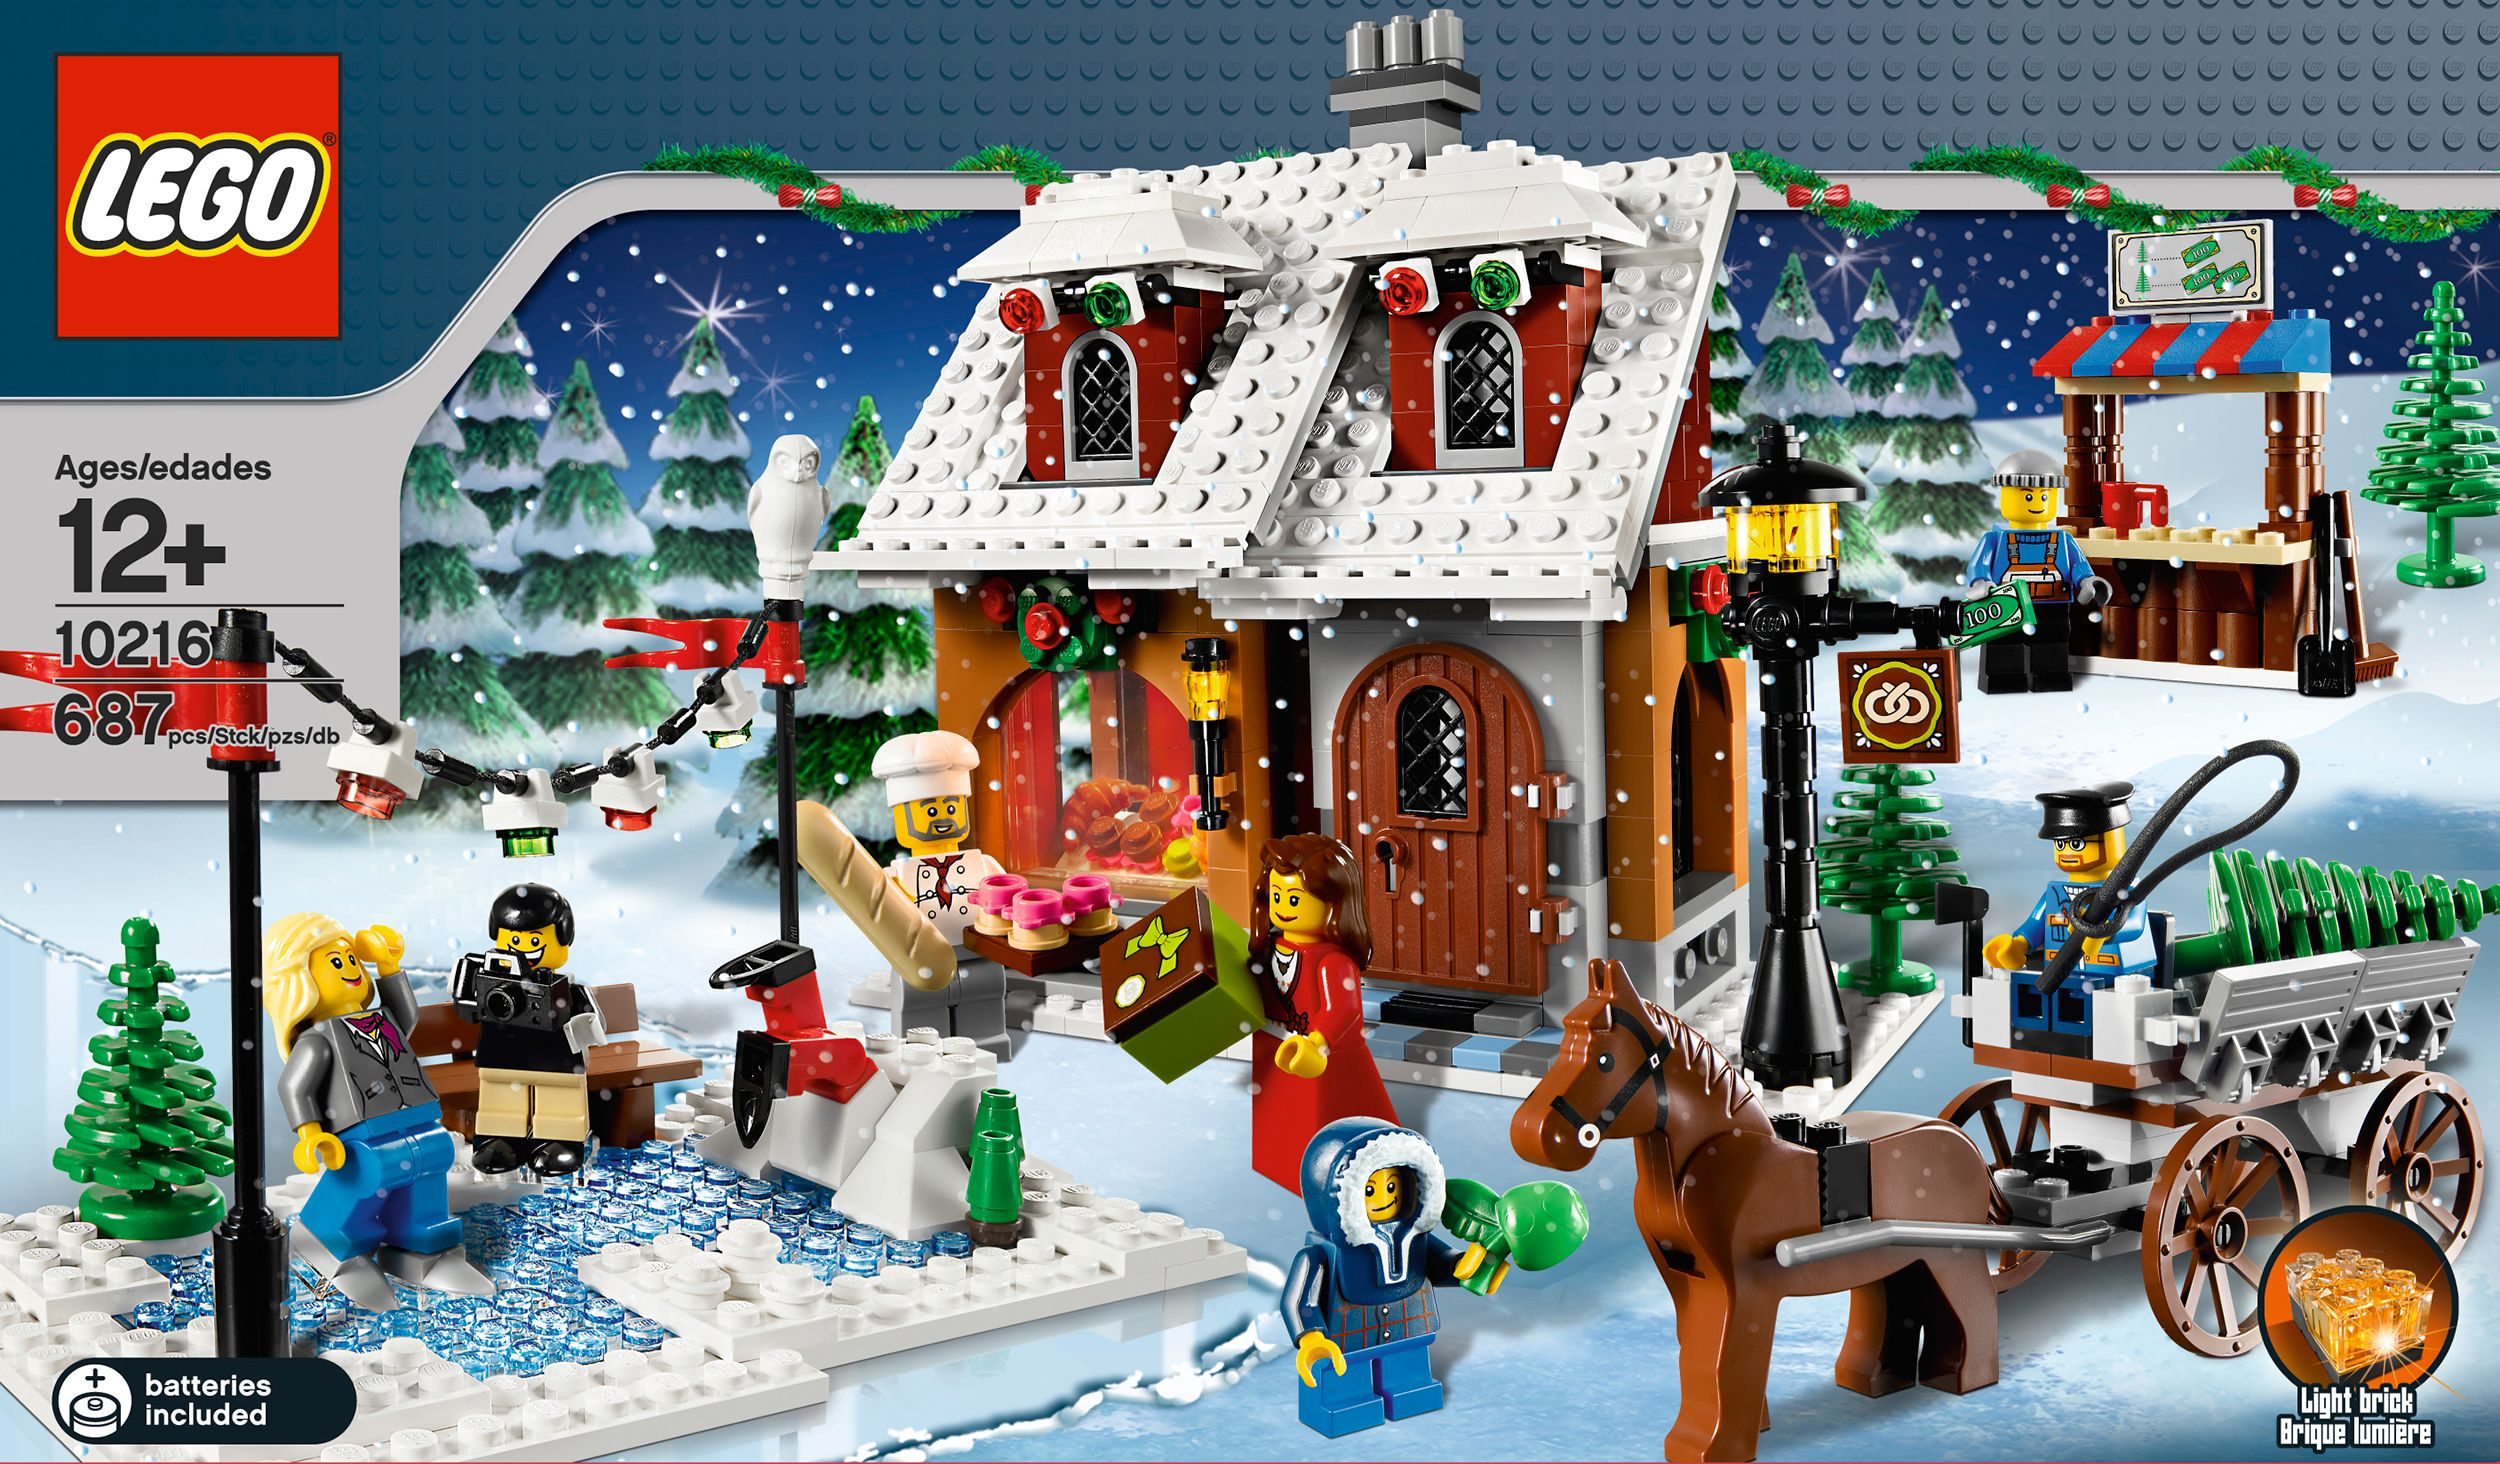 Lego 10216 Winter Village Bakery The Second In The Winter Village Series Lego Christmas Sets Lego Winter Lego Winter Village